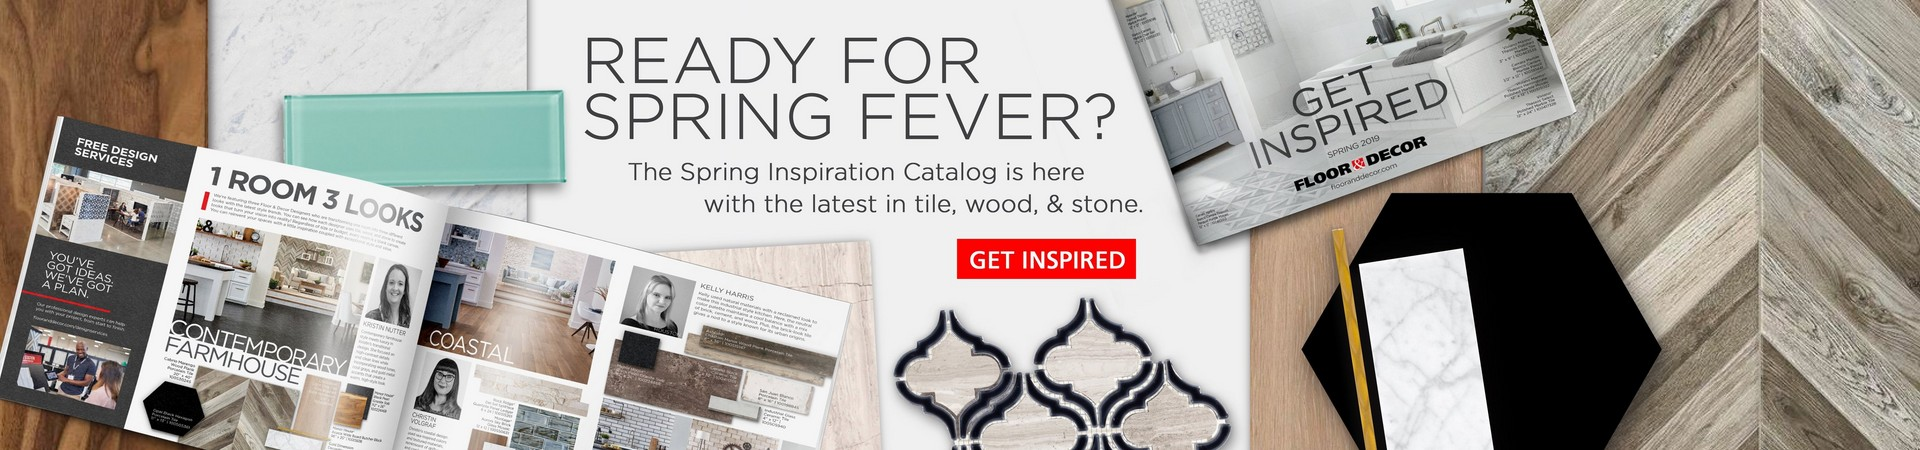 The Spring Inspiration Catalog is here with the latest in tile, wood, and stone.